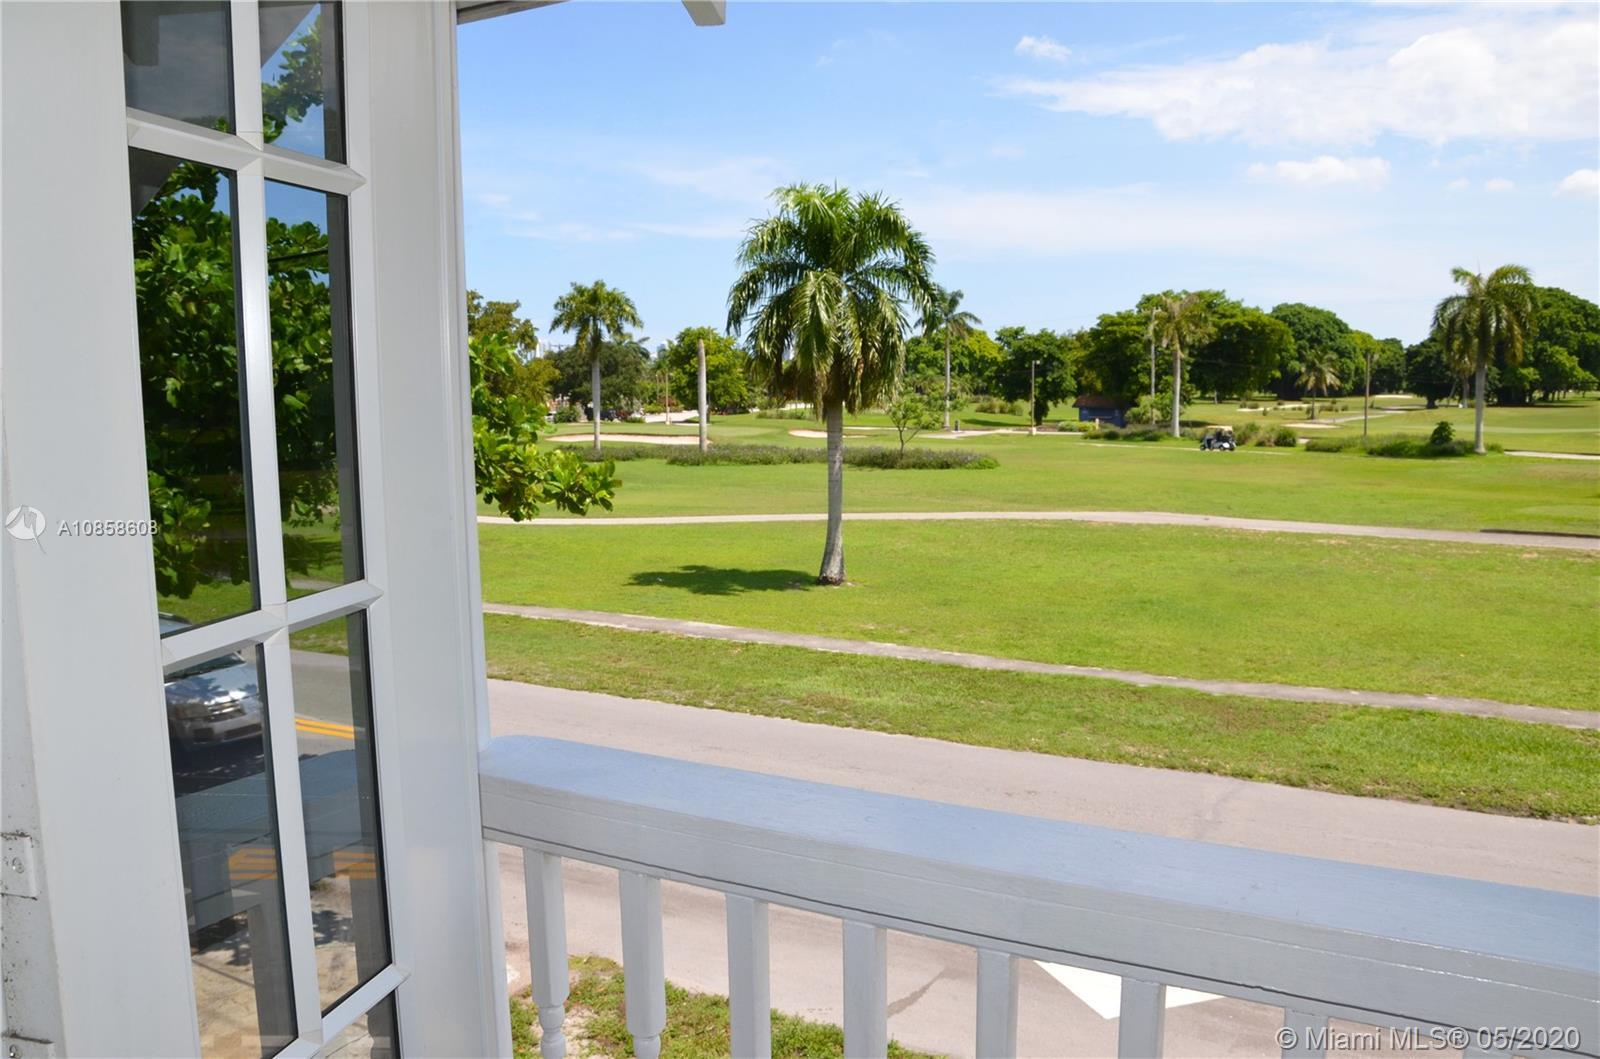 Unique Corner Property with Magnificent Golf Course Views~Charming Mediterranean Style Home with 3 B